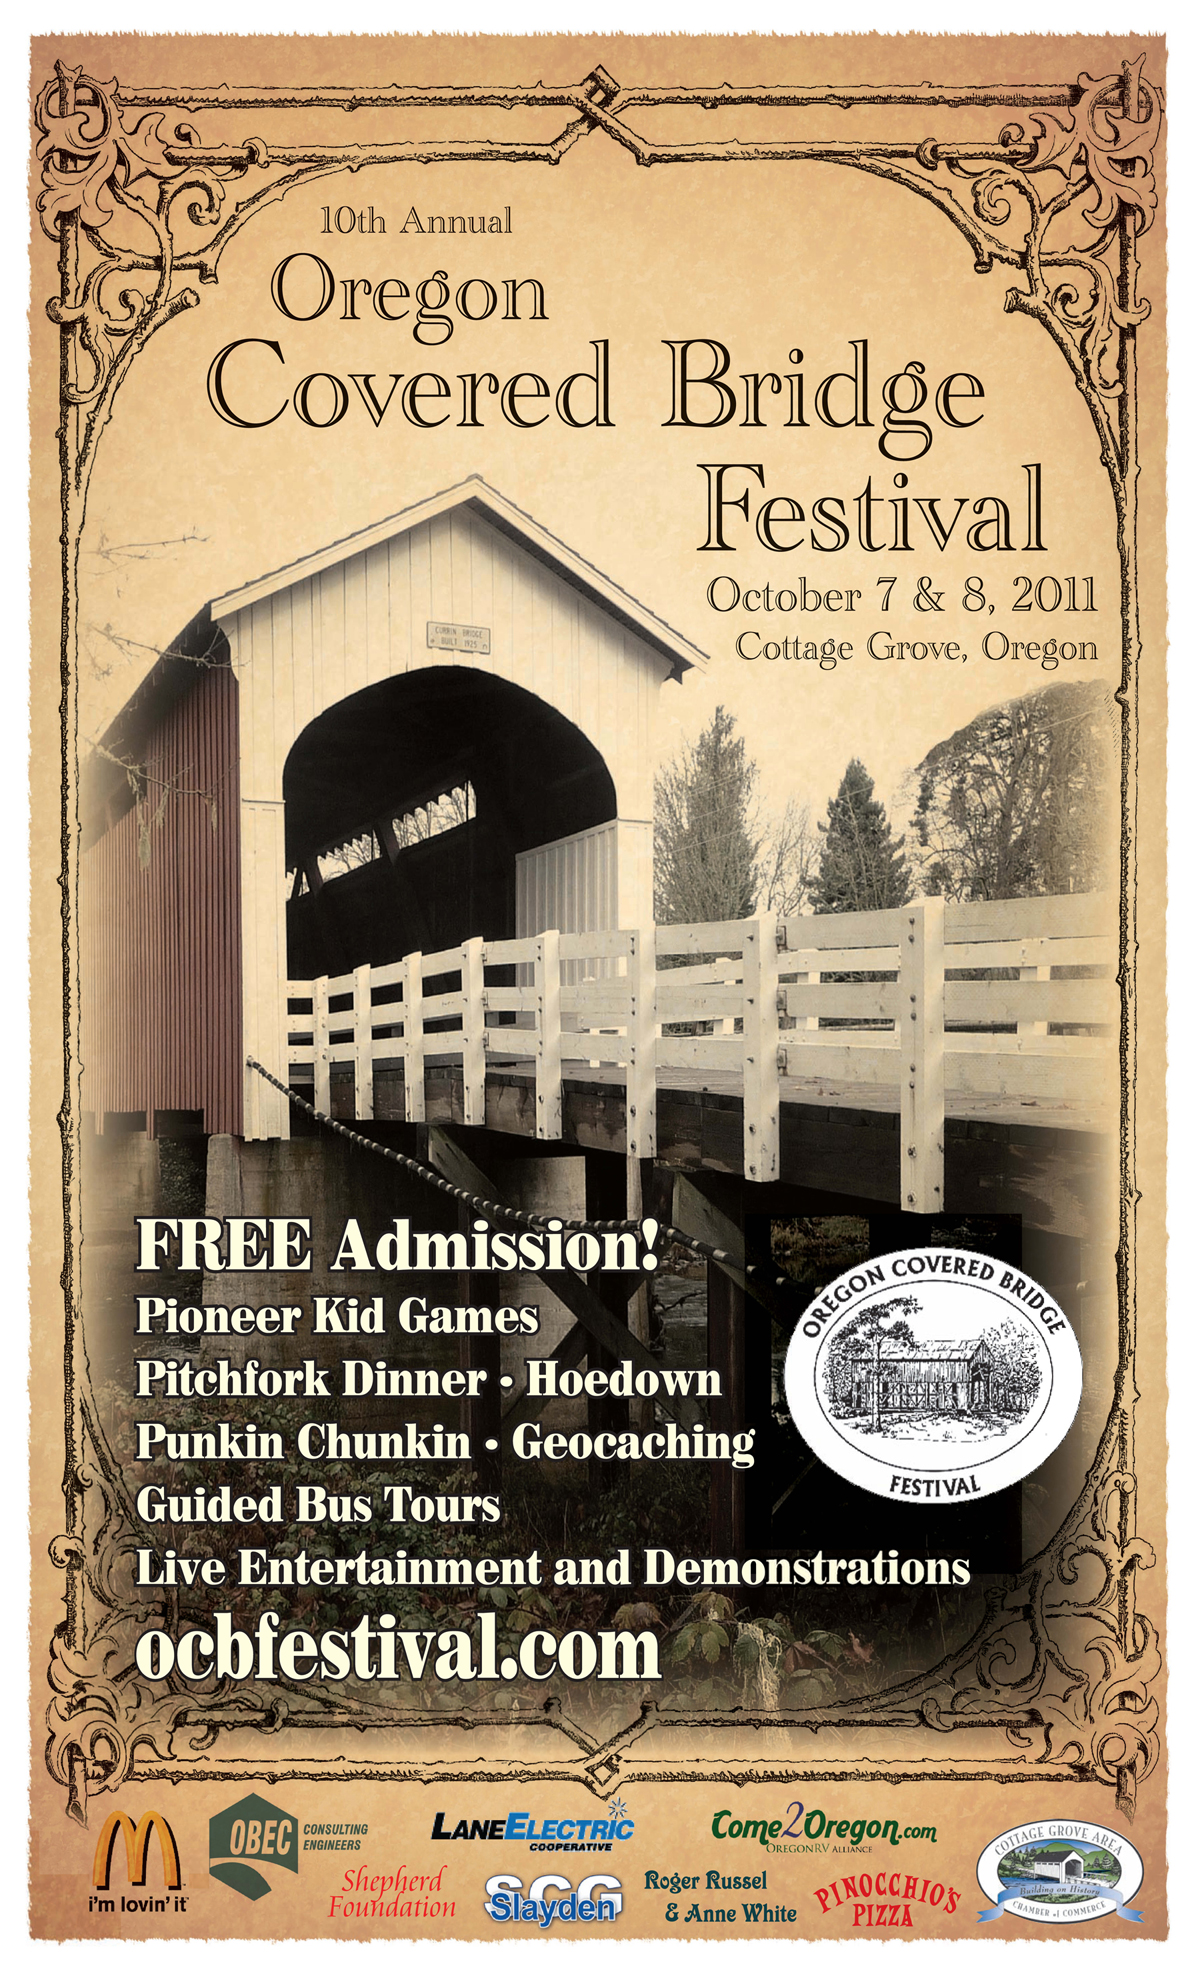 2011 Oregon Covered Bridge Festival poster